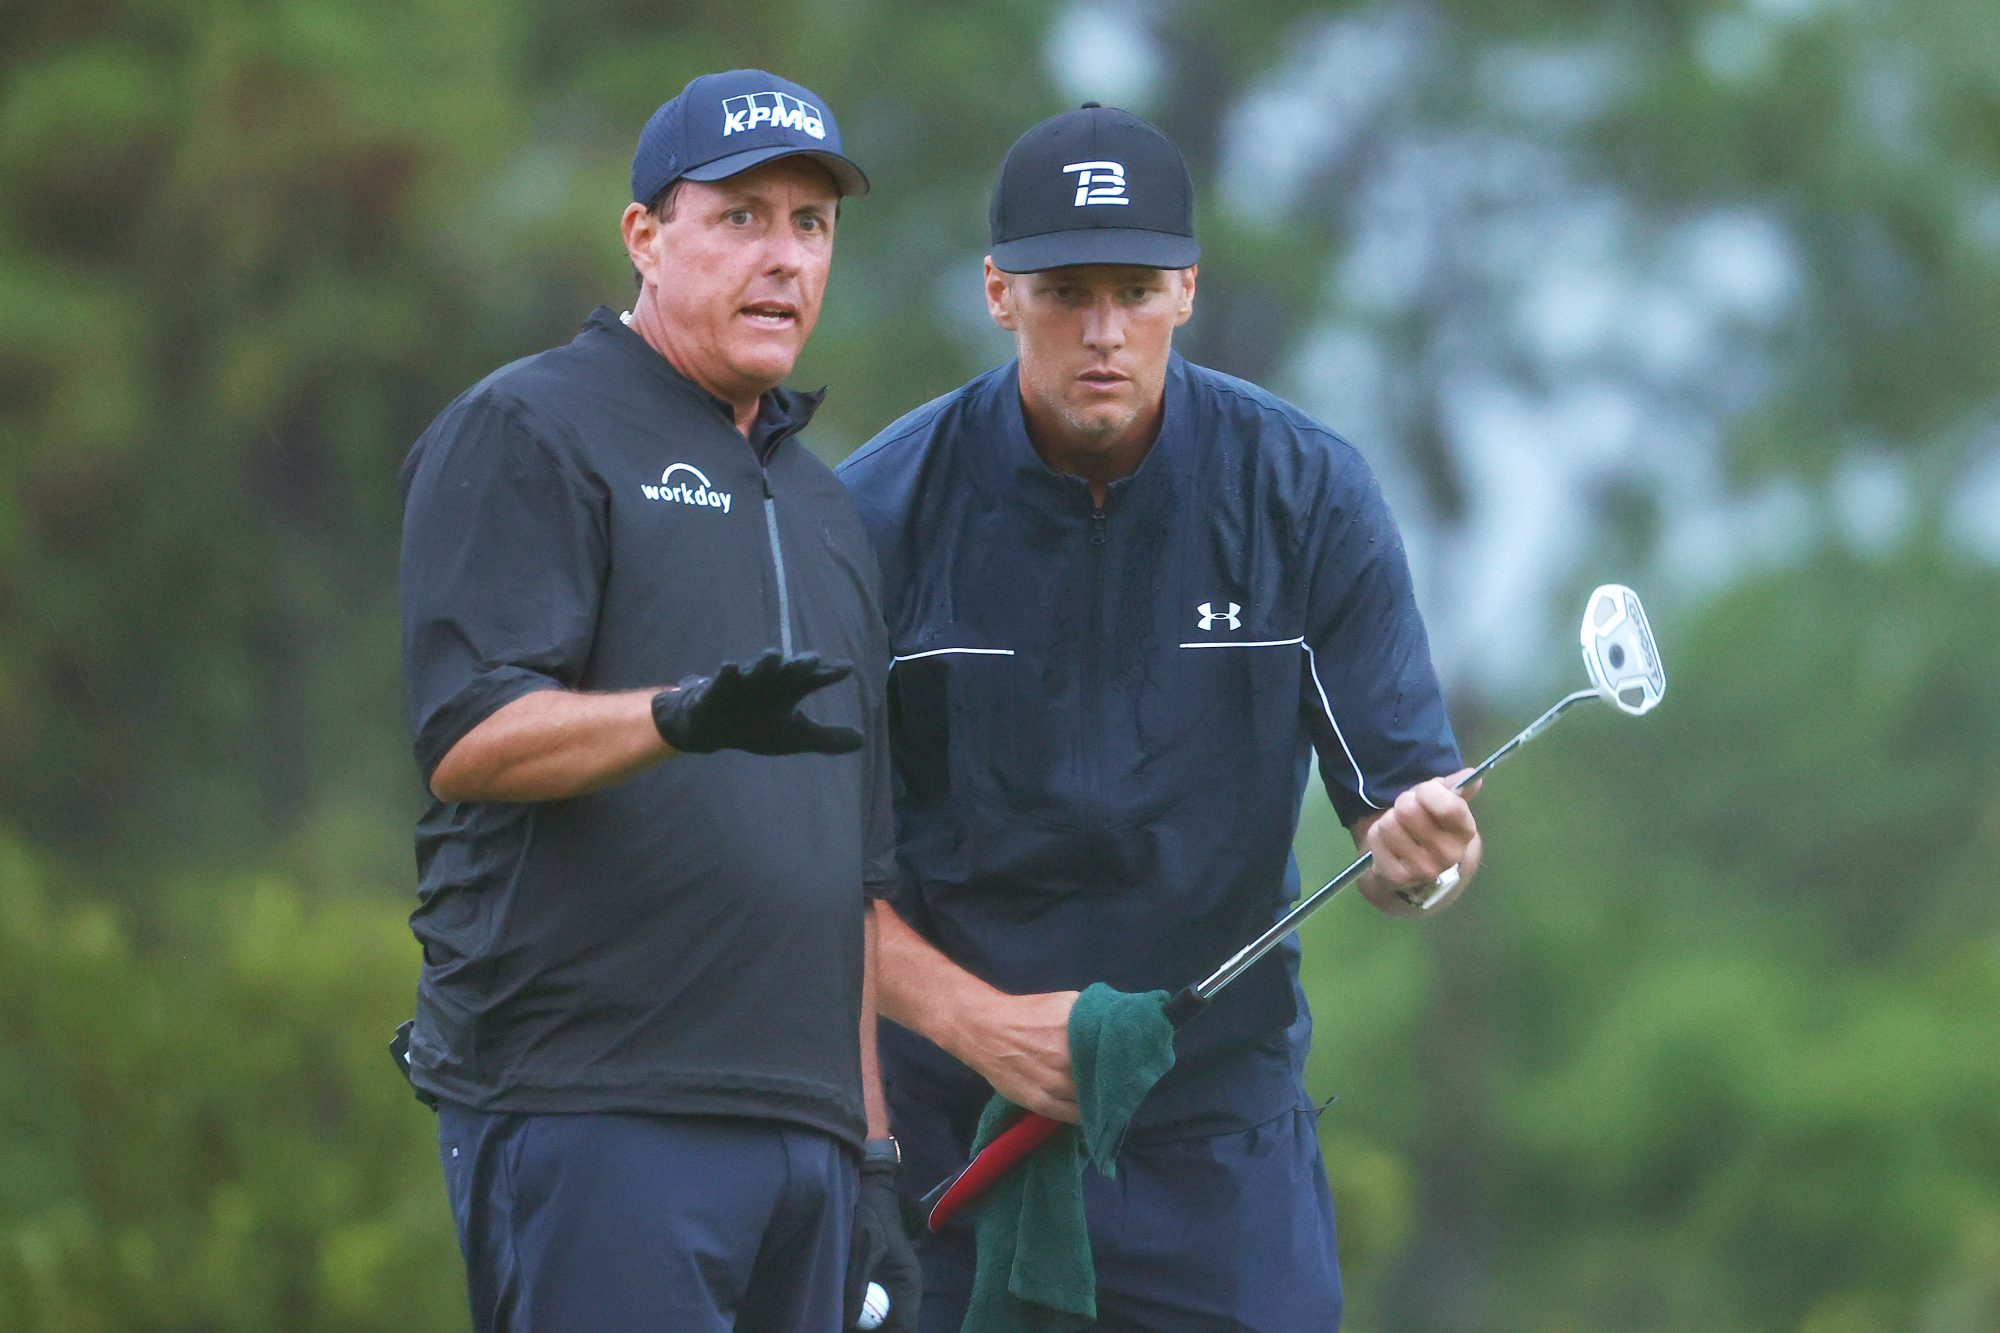 Tom Brady and Phil Mickelson at last year's The Match